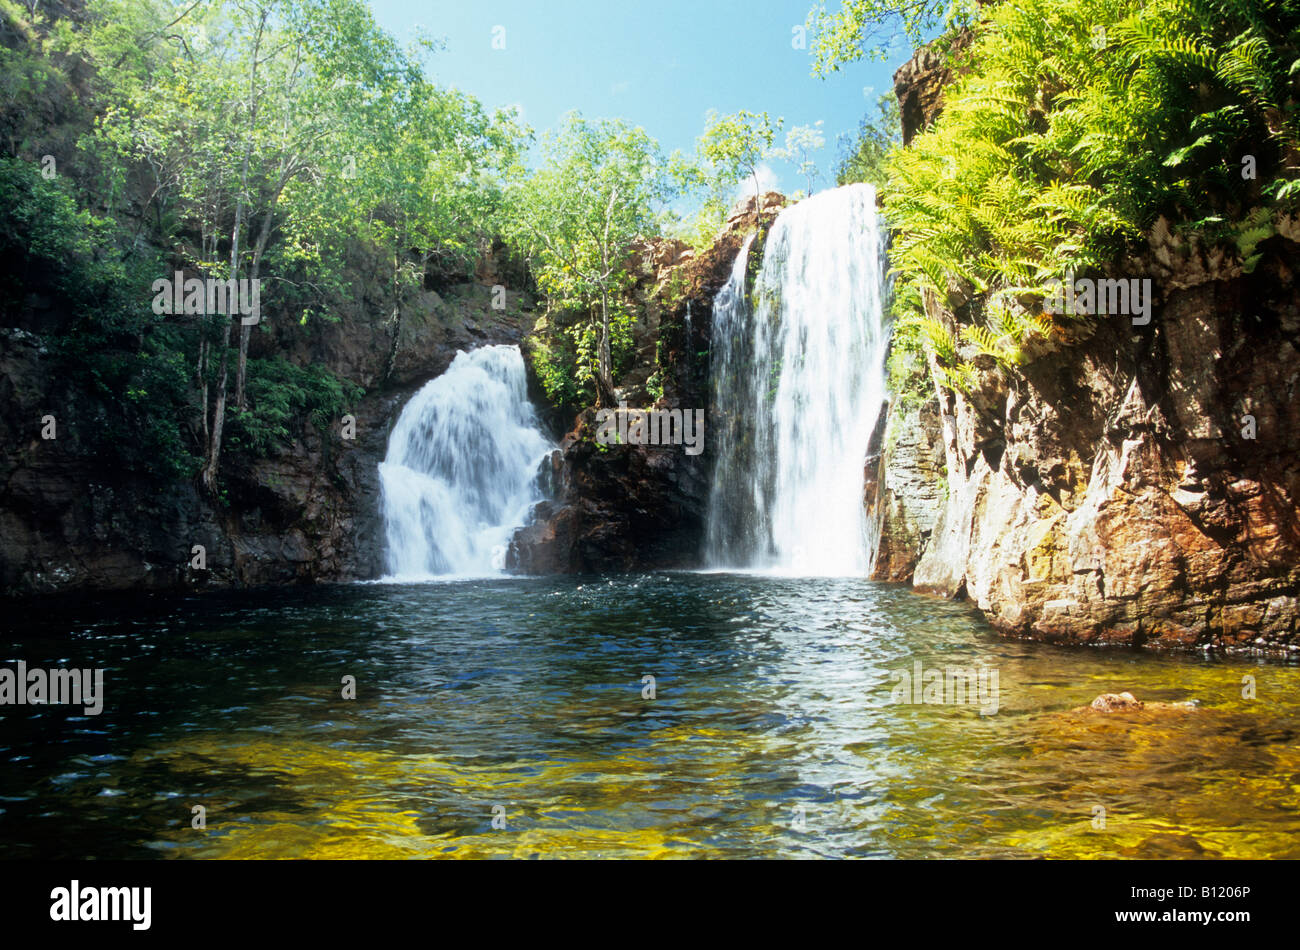 Florence Falls in the Litchfield National Park, Northern Territory, Australia. - Stock Image